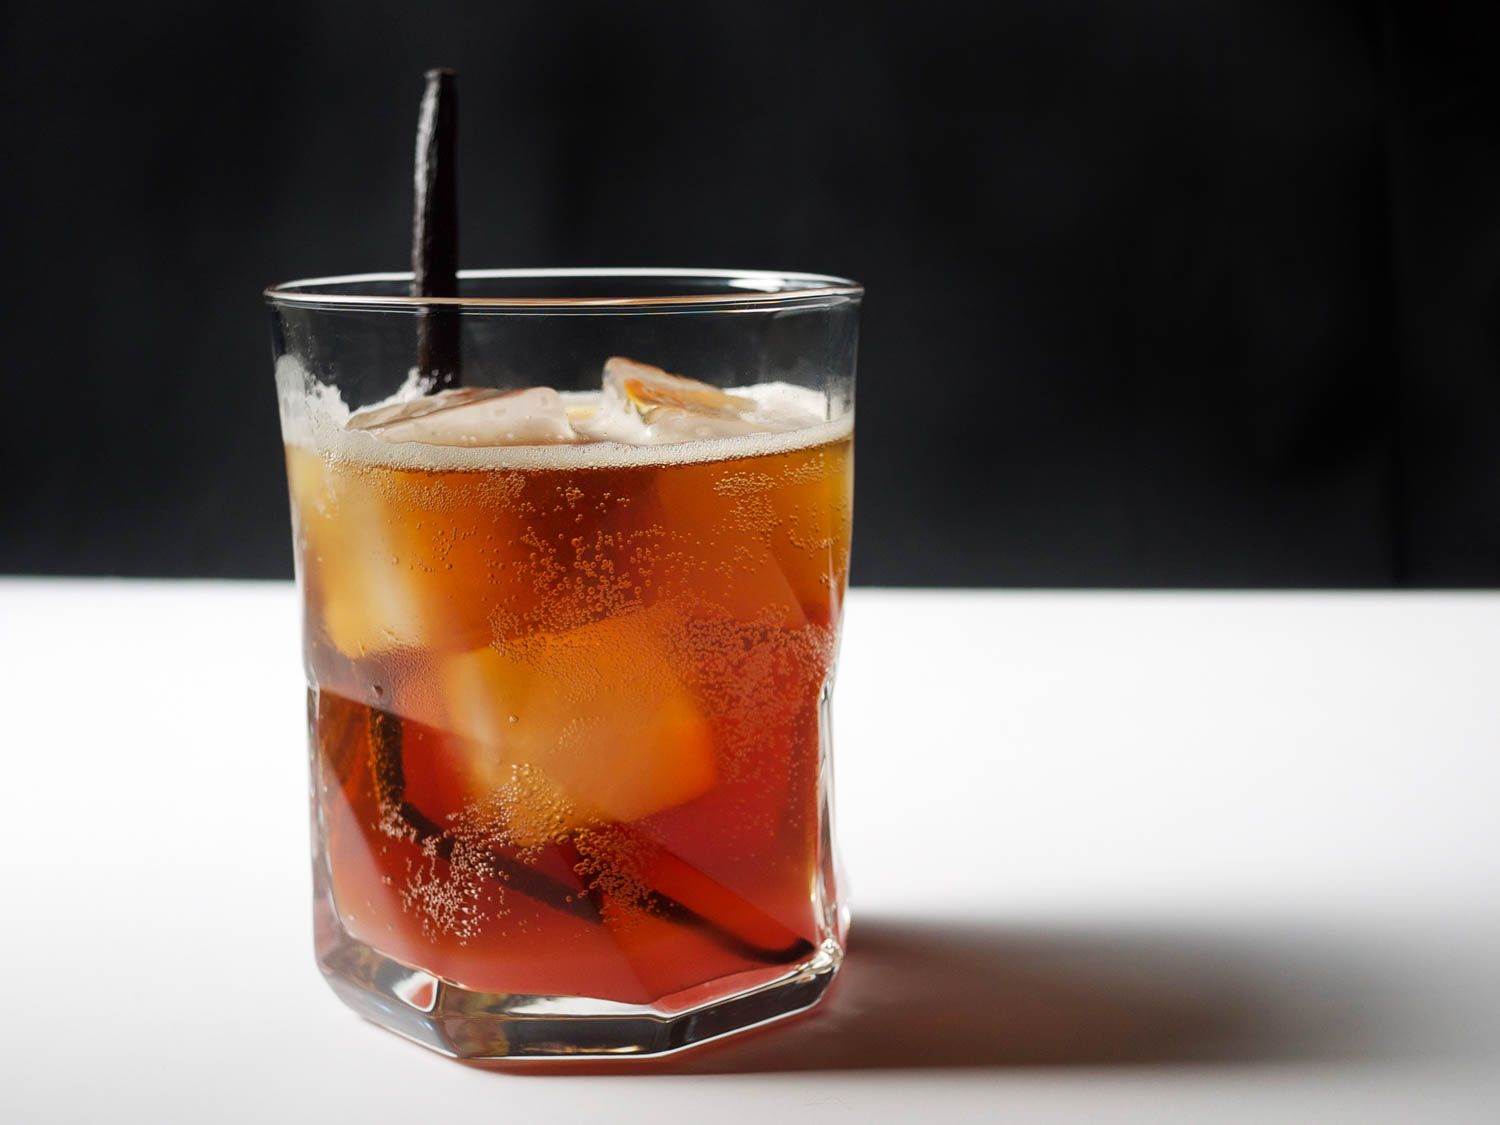 20160425-beer-cocktail-recipes-roundup-10.jpg